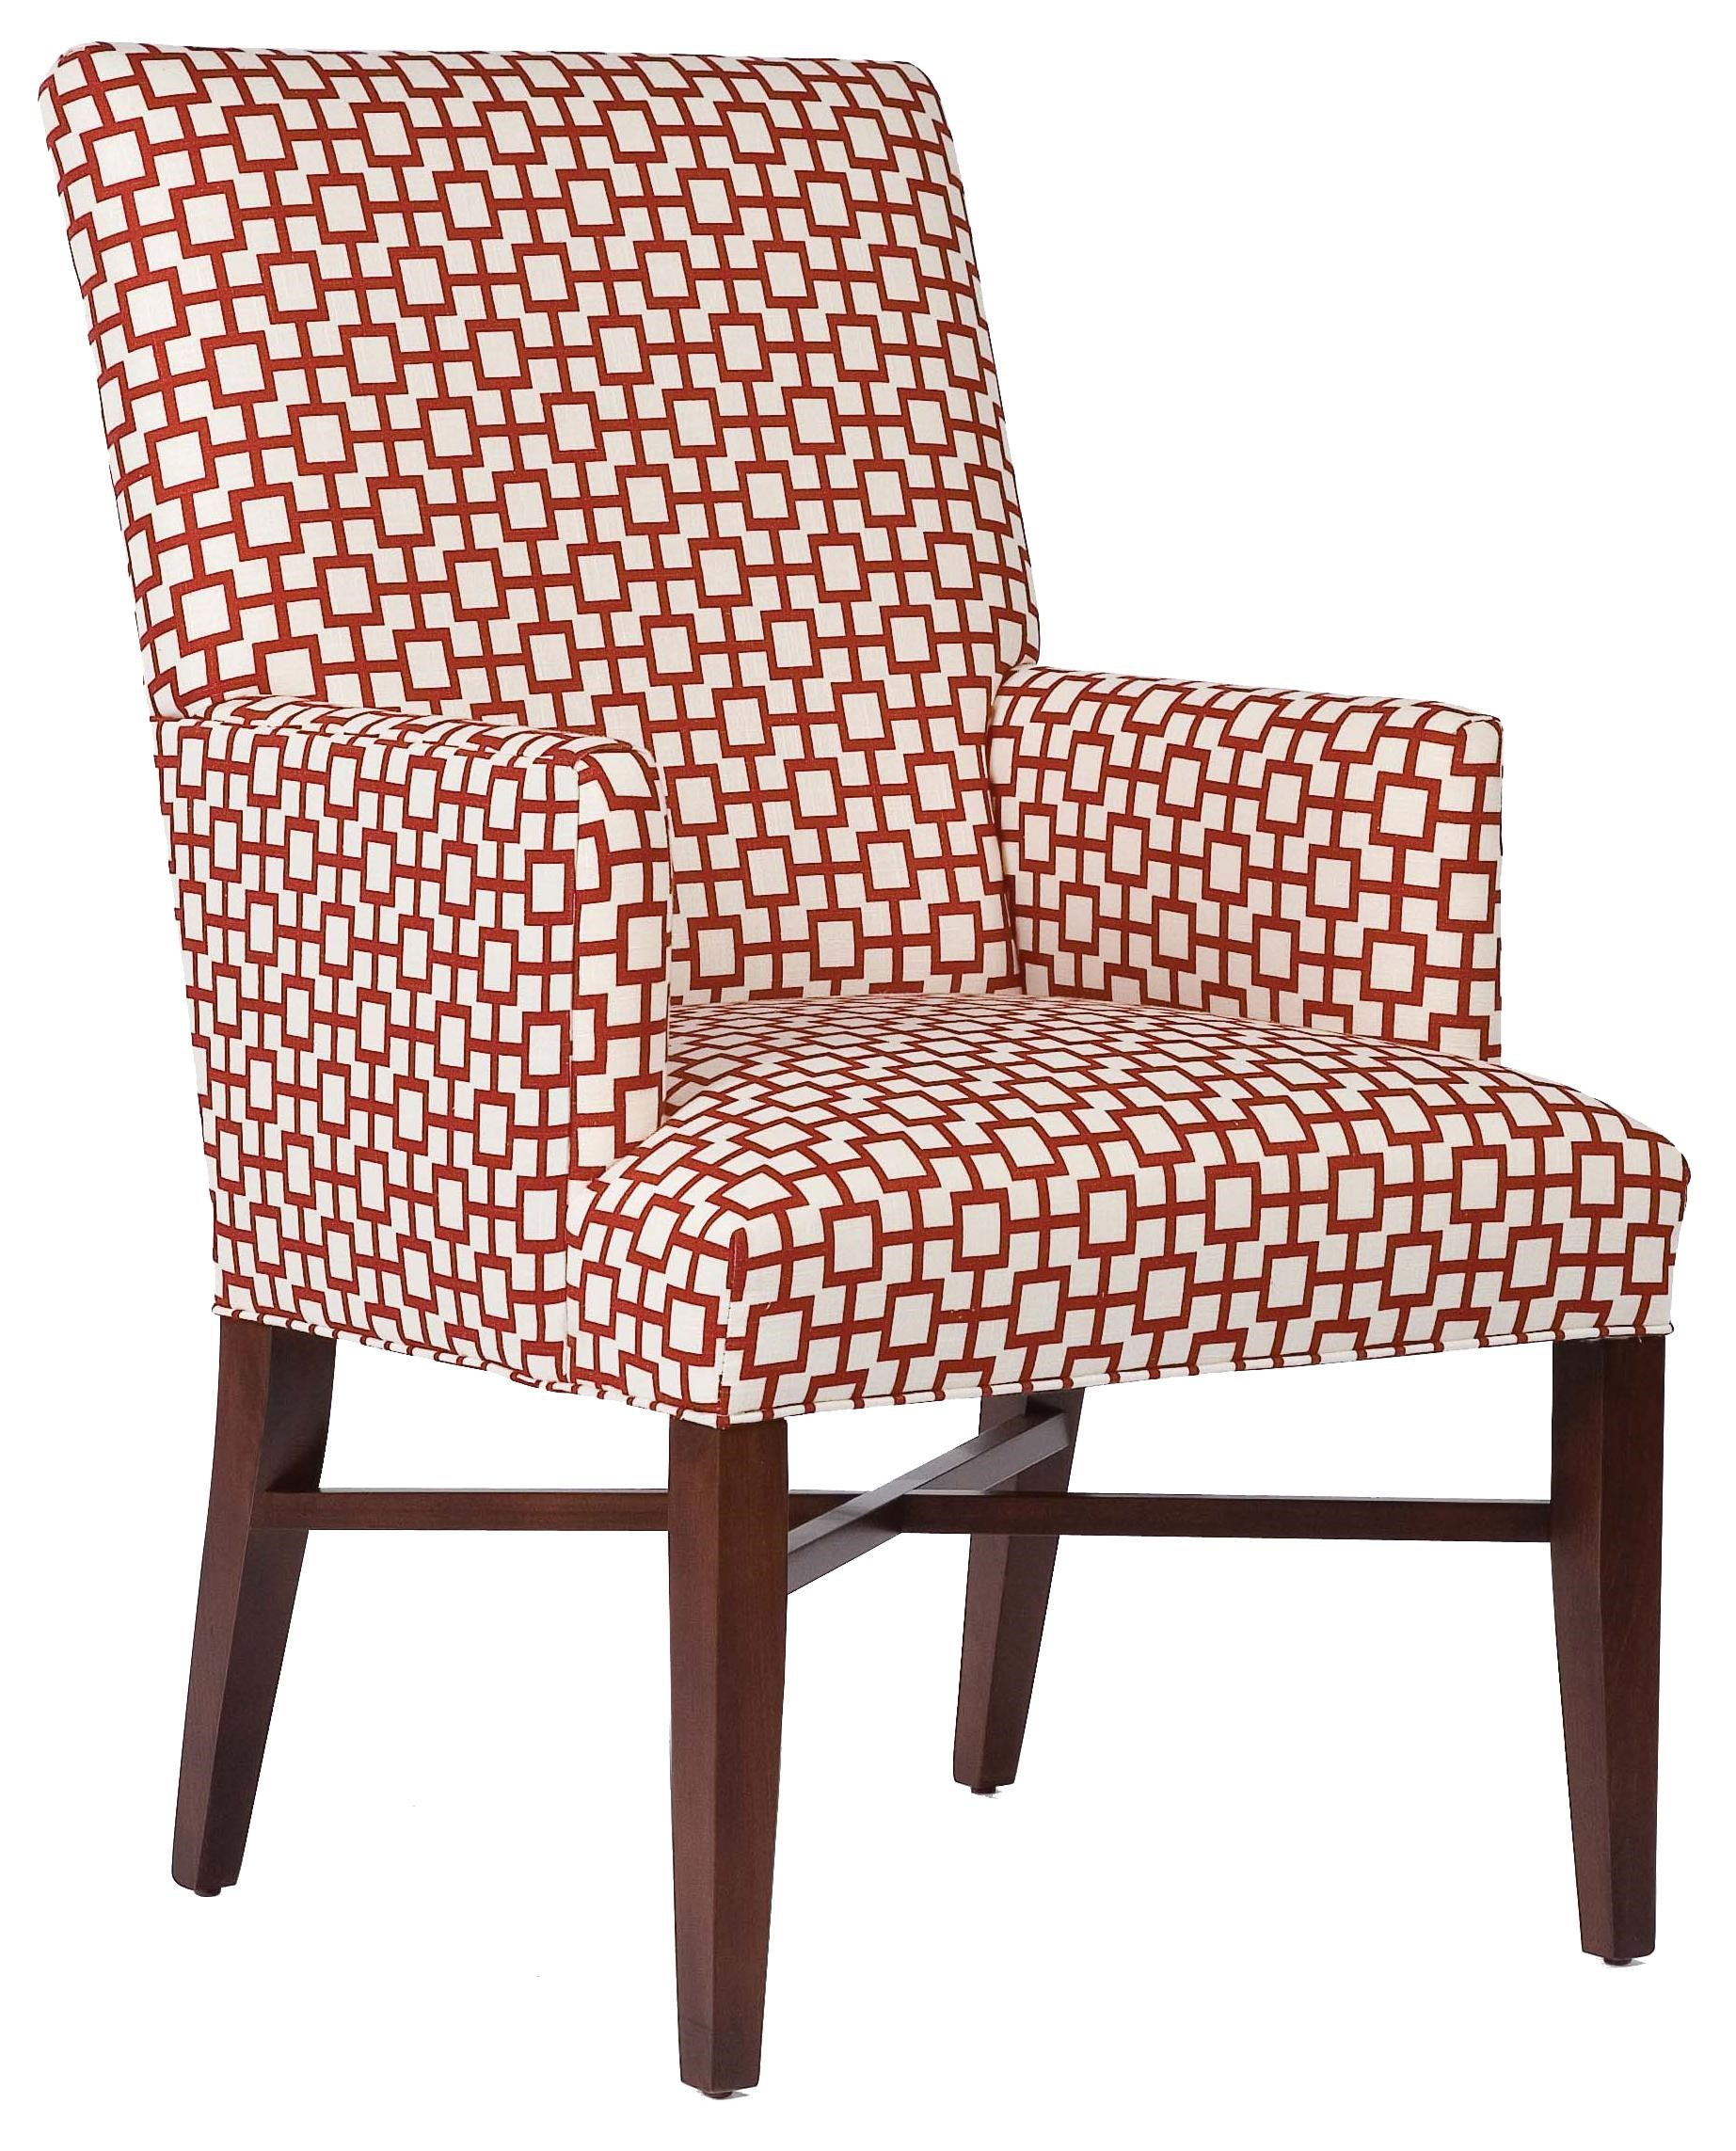 High Quality Fairfield Chairs Contemporary Accent Chair With Decorative Stretcher